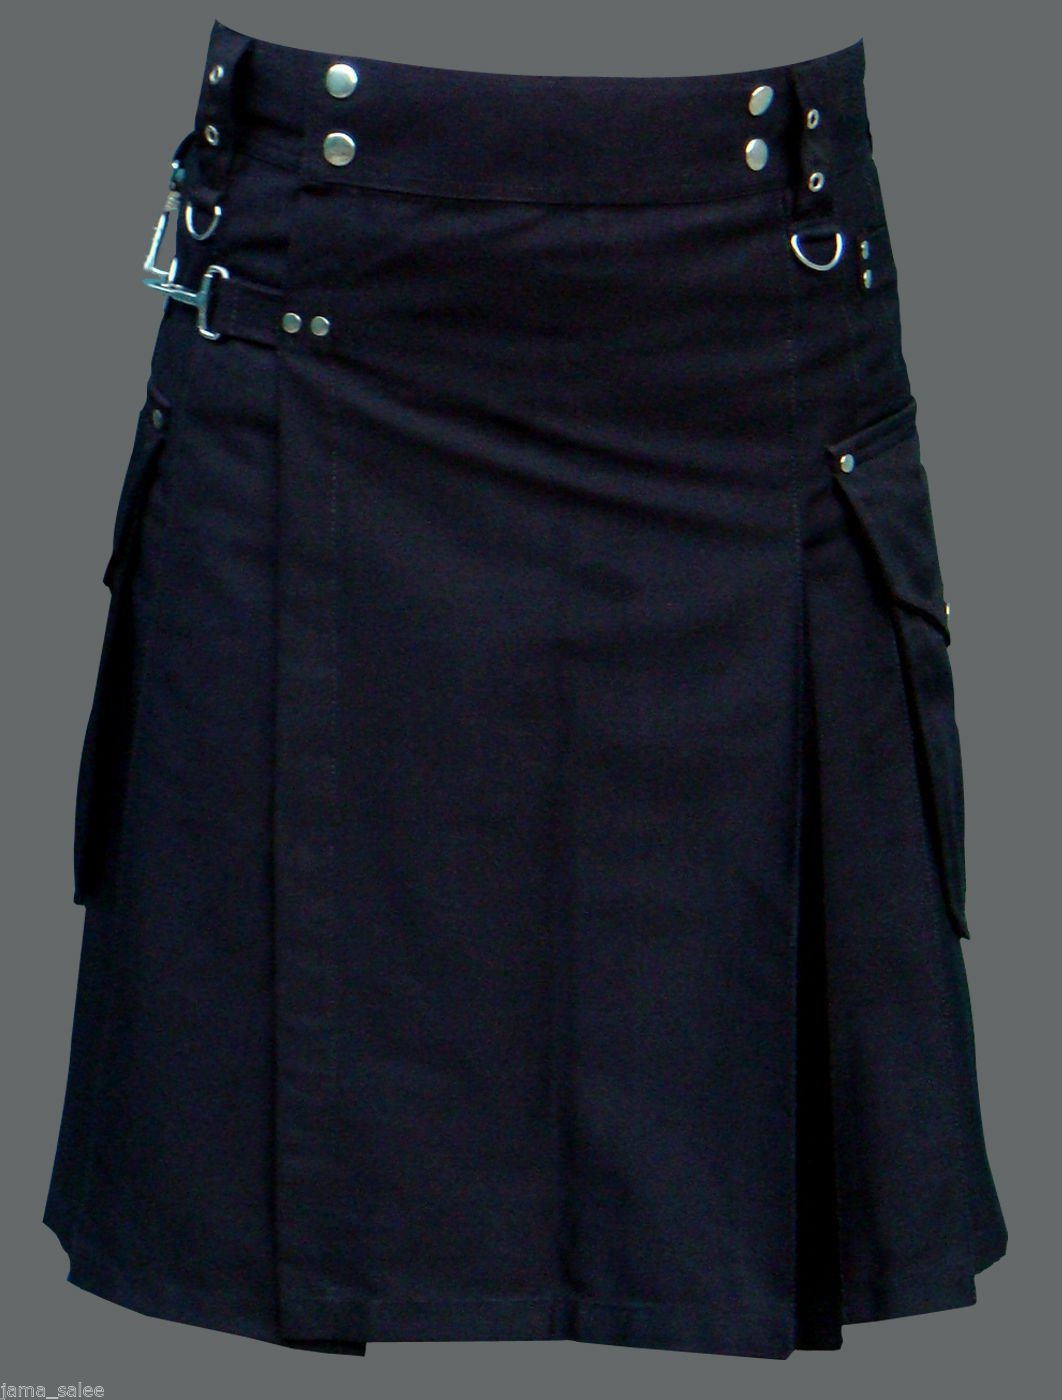 Men 36 Waist Handmade Black Deluxe Utility Kilt 100% Cotton With Cargo Pockets